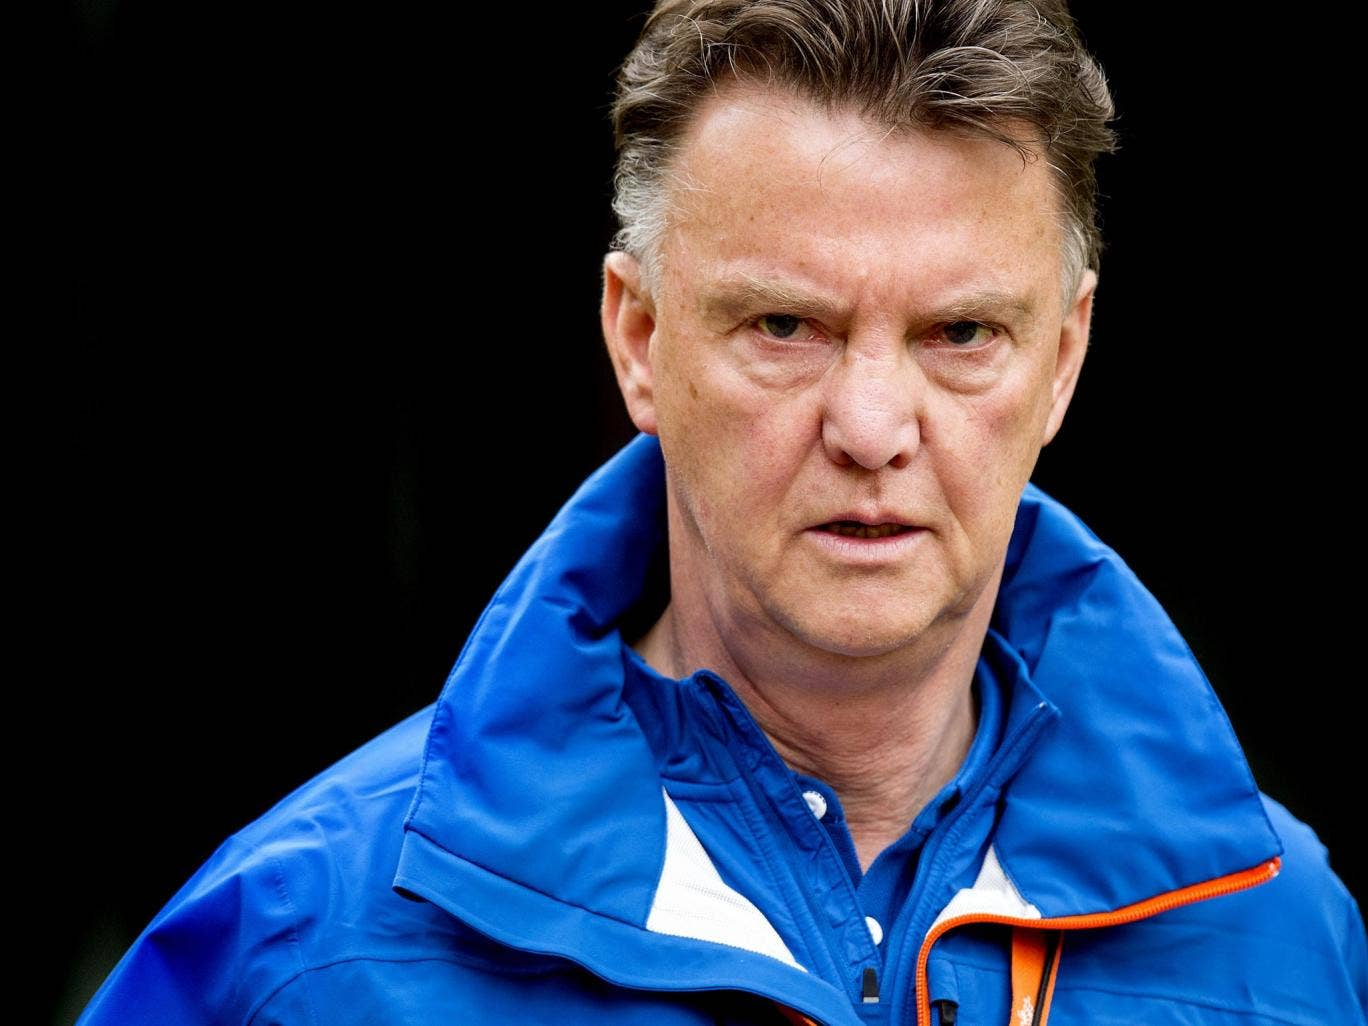 Van Gaal remains as serious as ever though, with his eye focused on his squad as they show their credentials ahead of his squad announcement